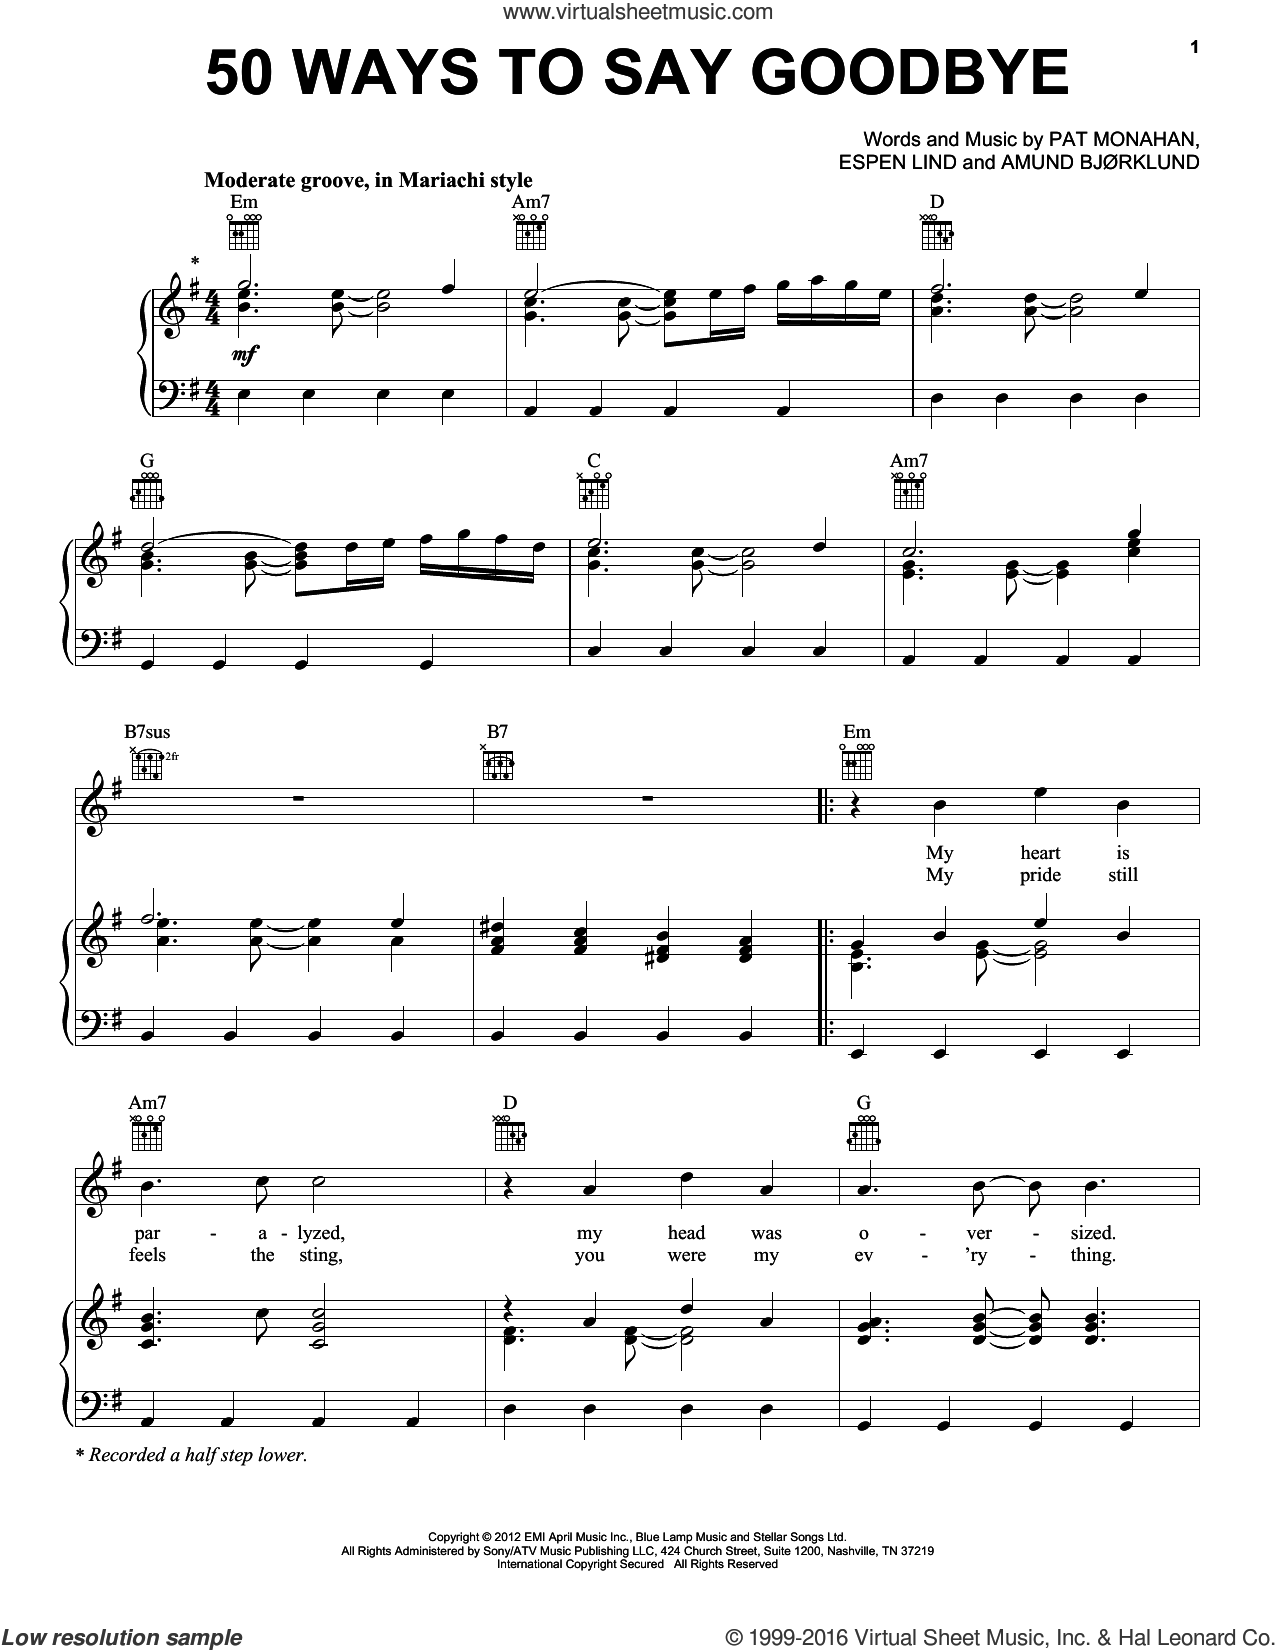 50 Ways To Say Goodbye sheet music for voice, piano or guitar by Pat Monahan